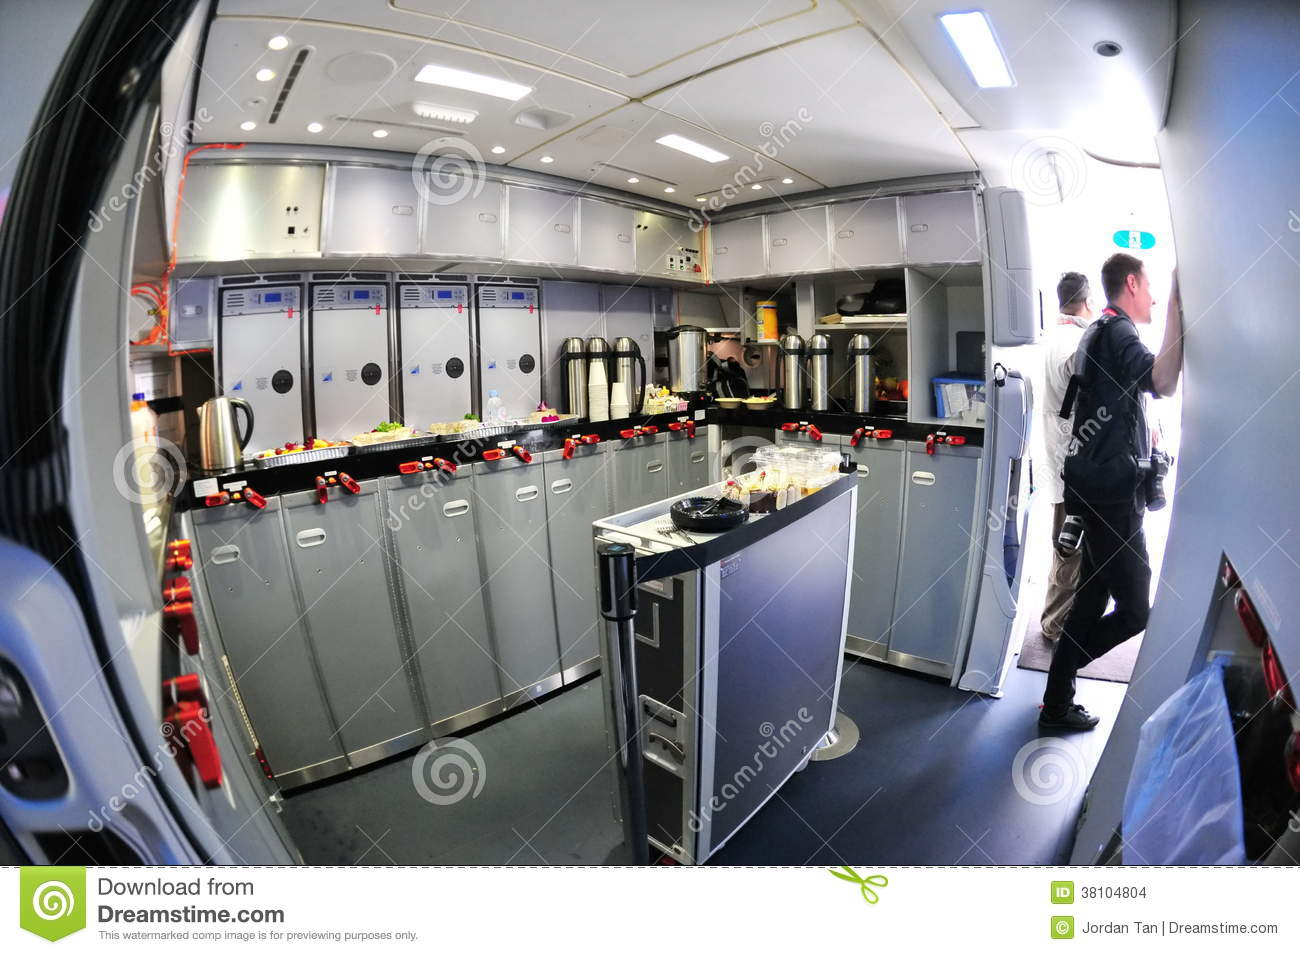 Rear Galley Of A Boeing 787 Dreamliner At Singapore